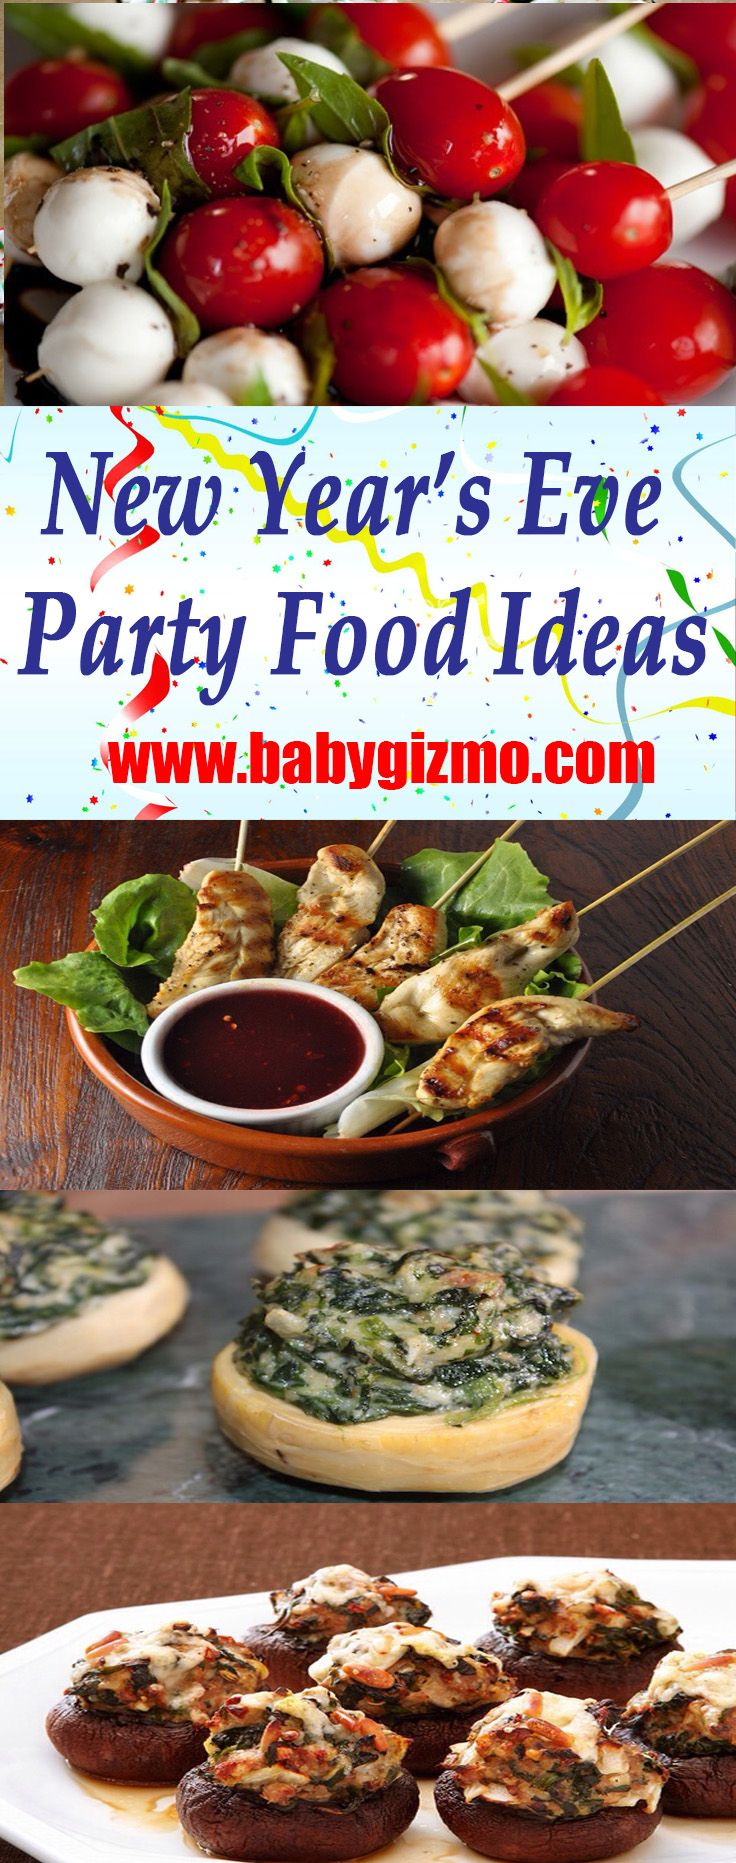 New years eve party finger food ideas nye party babygizmo new years eve party finger food ideas nye party babygizmo forumfinder Choice Image